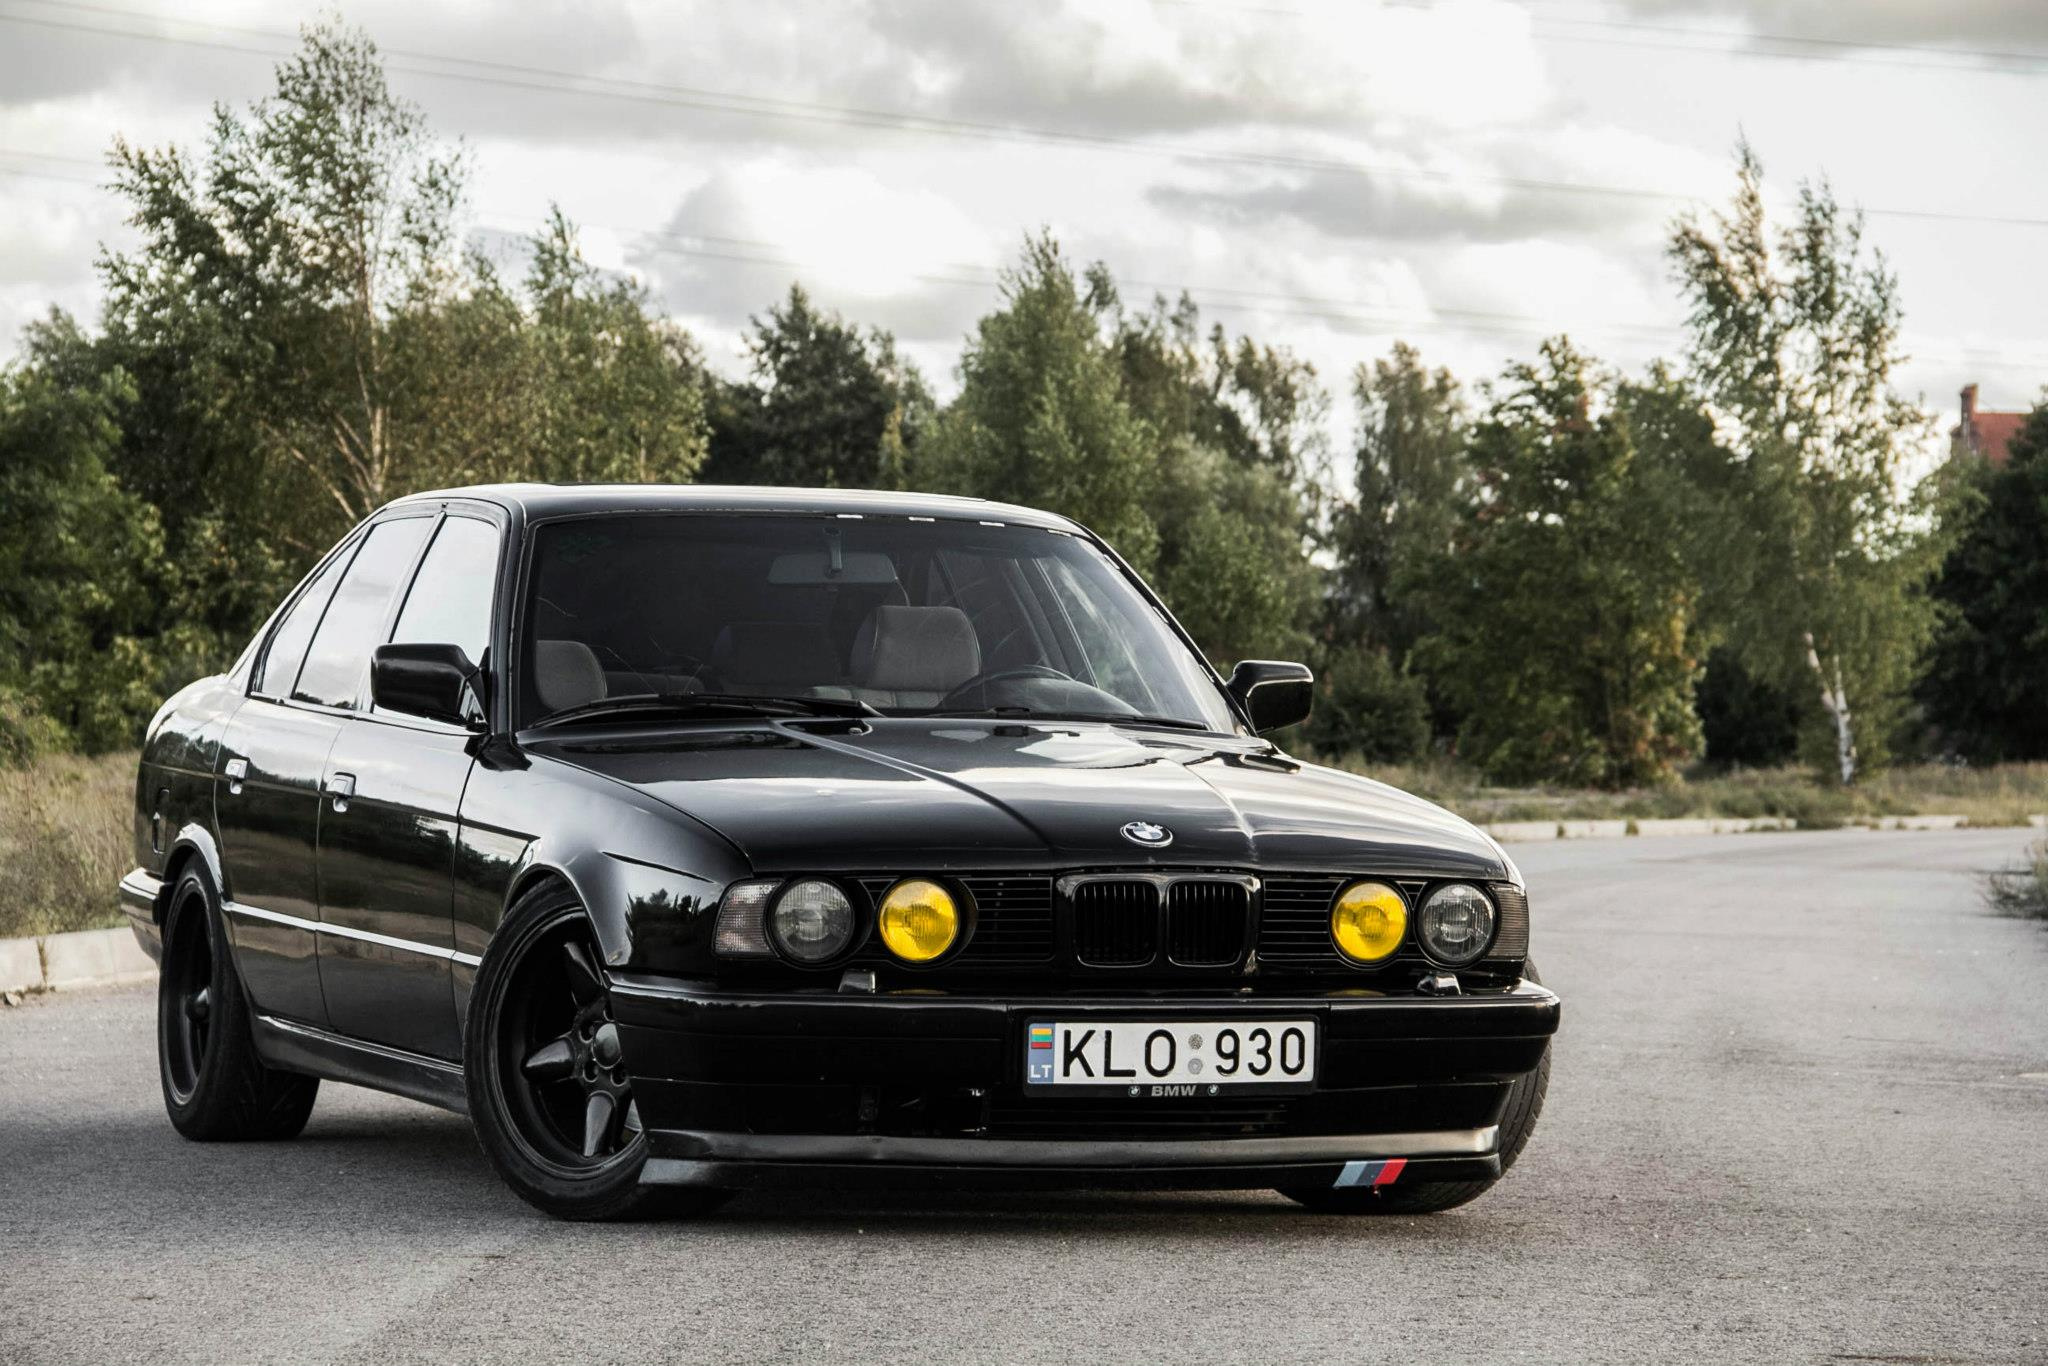 1989 bmw e34 525i now 540 m62 twin turbo. Black Bedroom Furniture Sets. Home Design Ideas